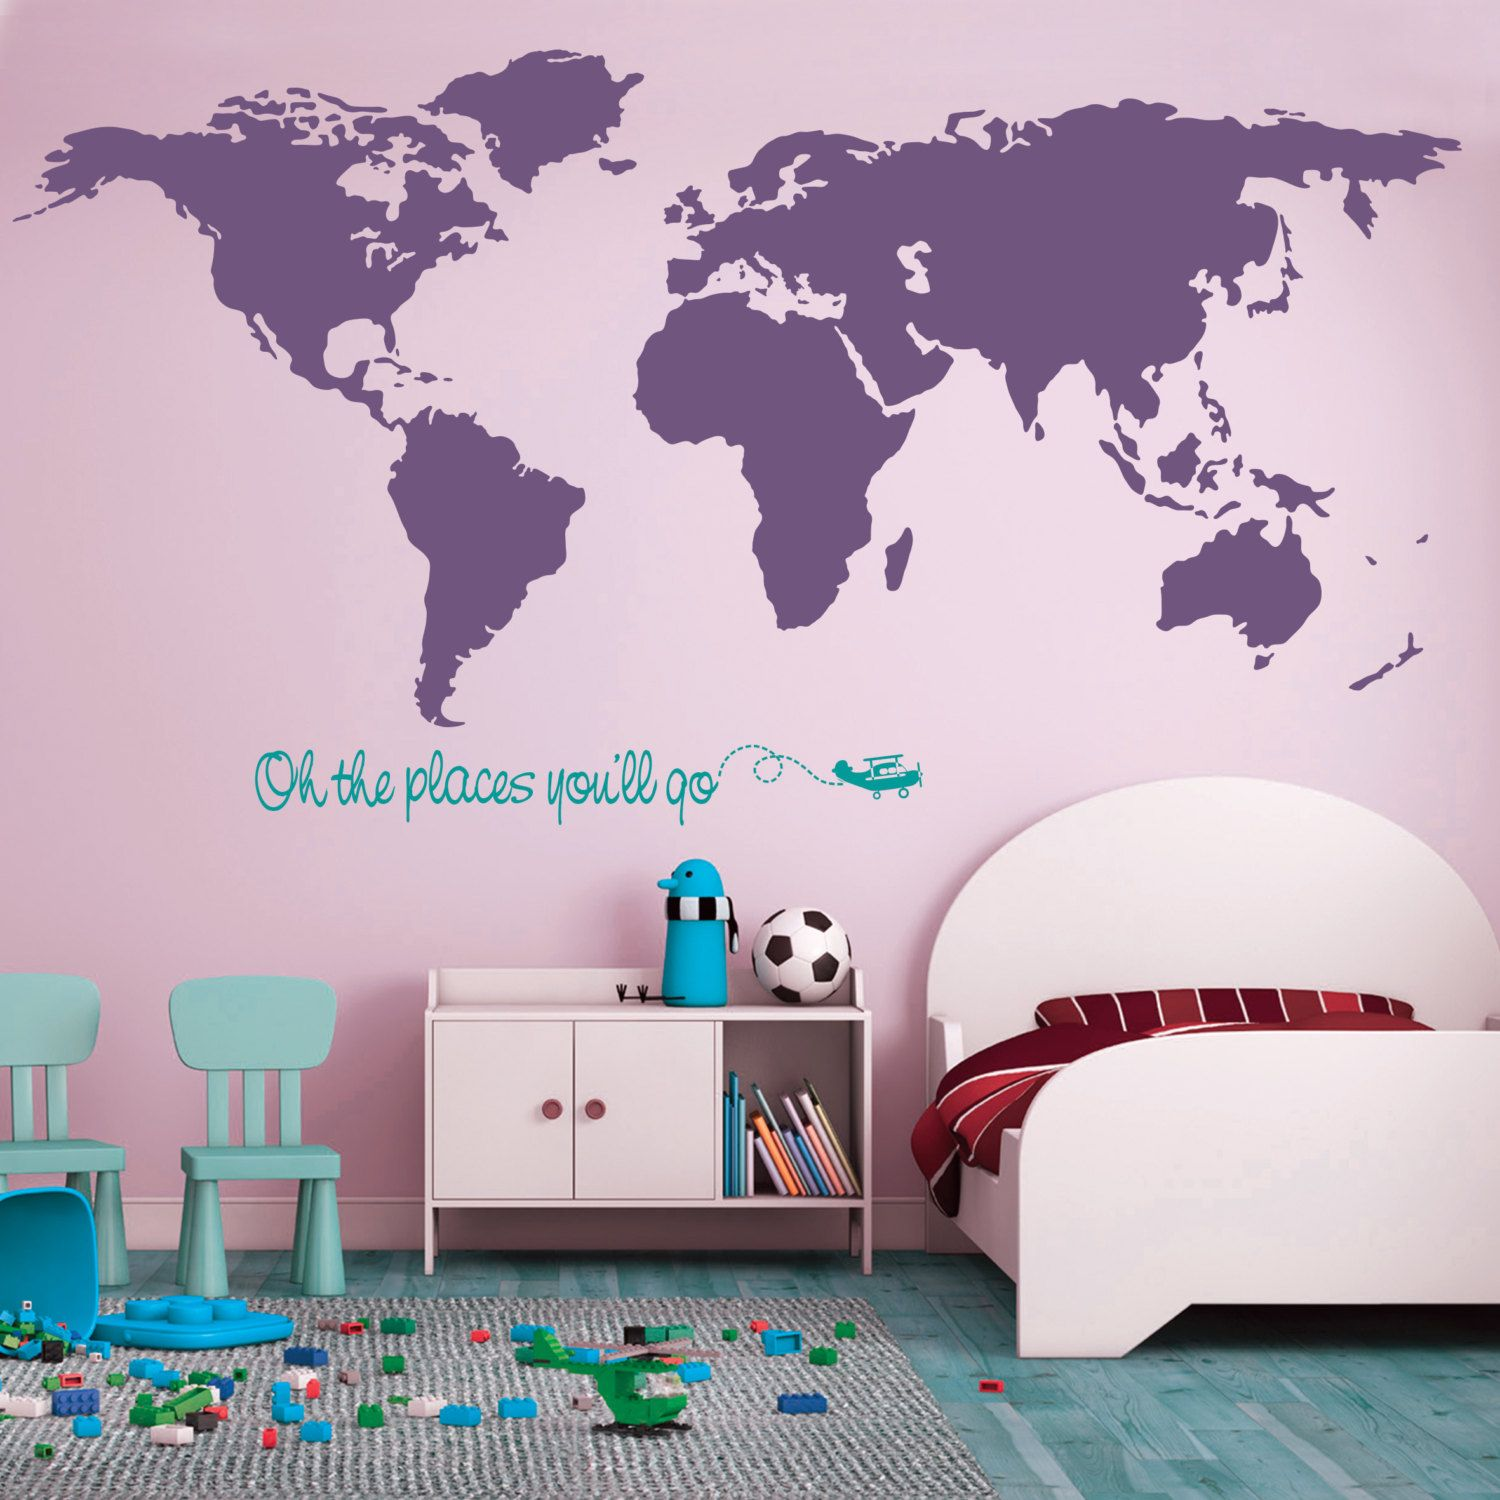 50off sale world map wall decal baby girl baby boy nursery world map wall decal baby girl baby boy nursery large world map with quote large world map nursery wall decal by on etsy gumiabroncs Image collections